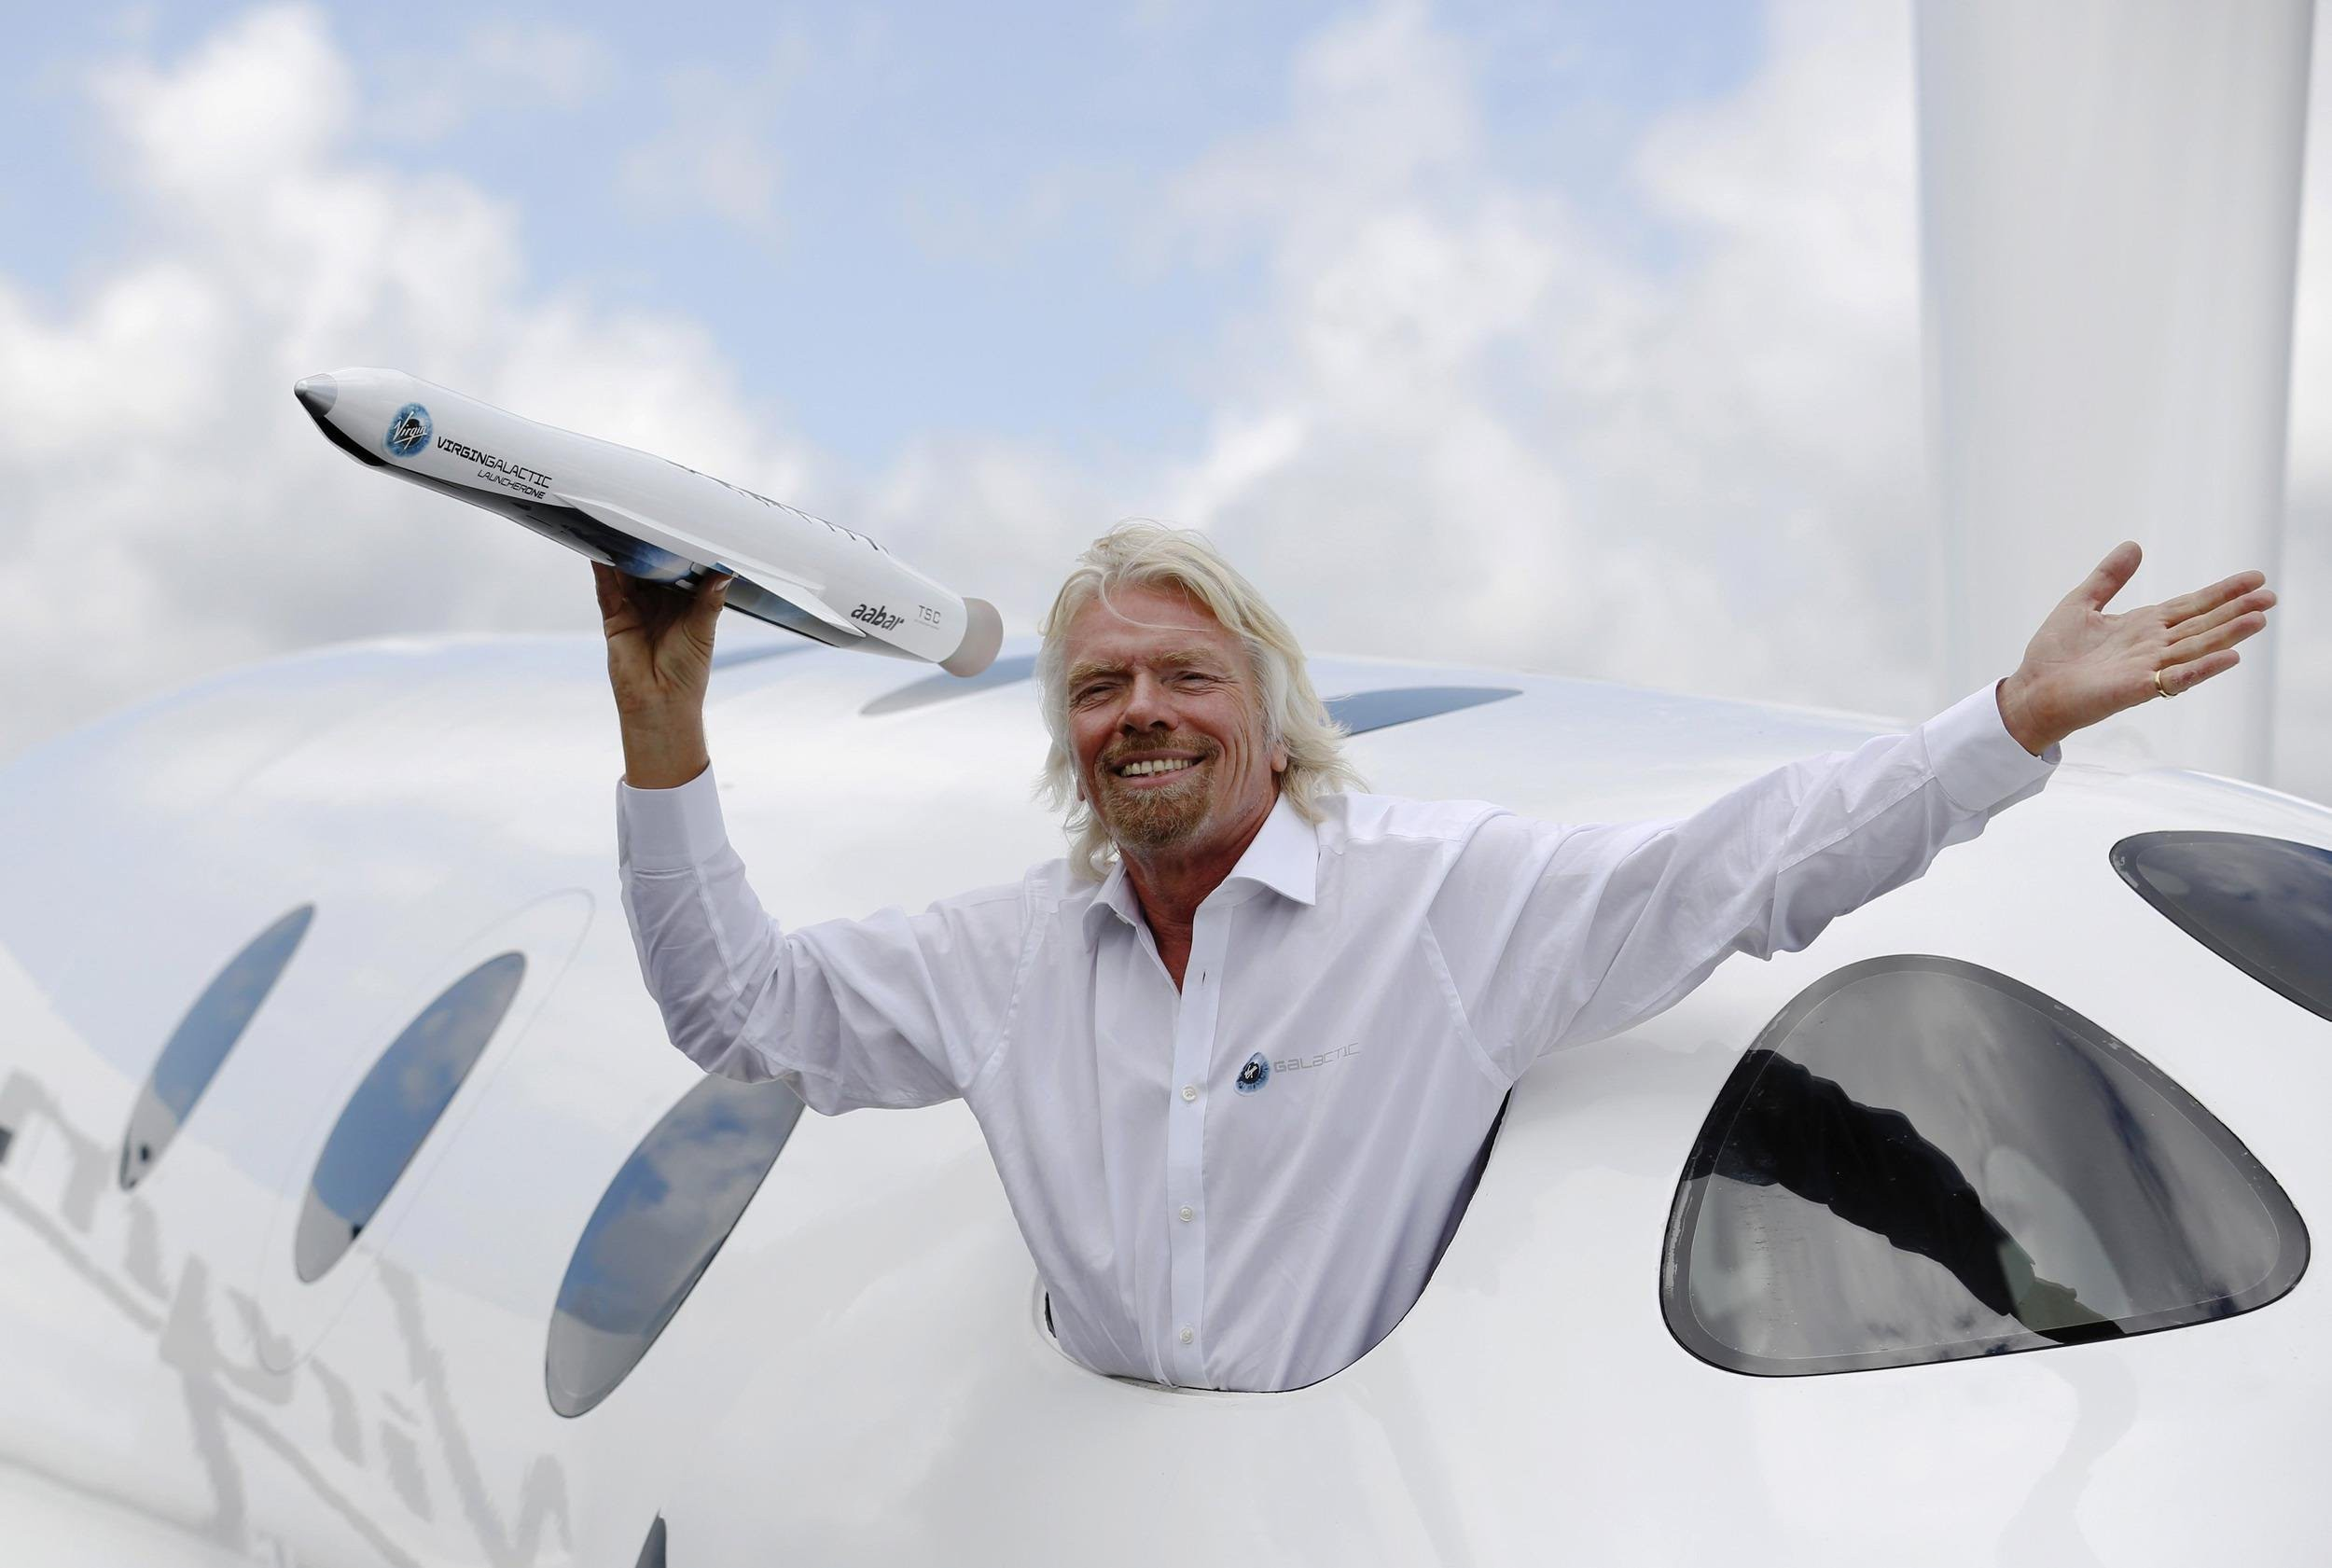 Richard Branson High Quality Wallpapers 2500x1681